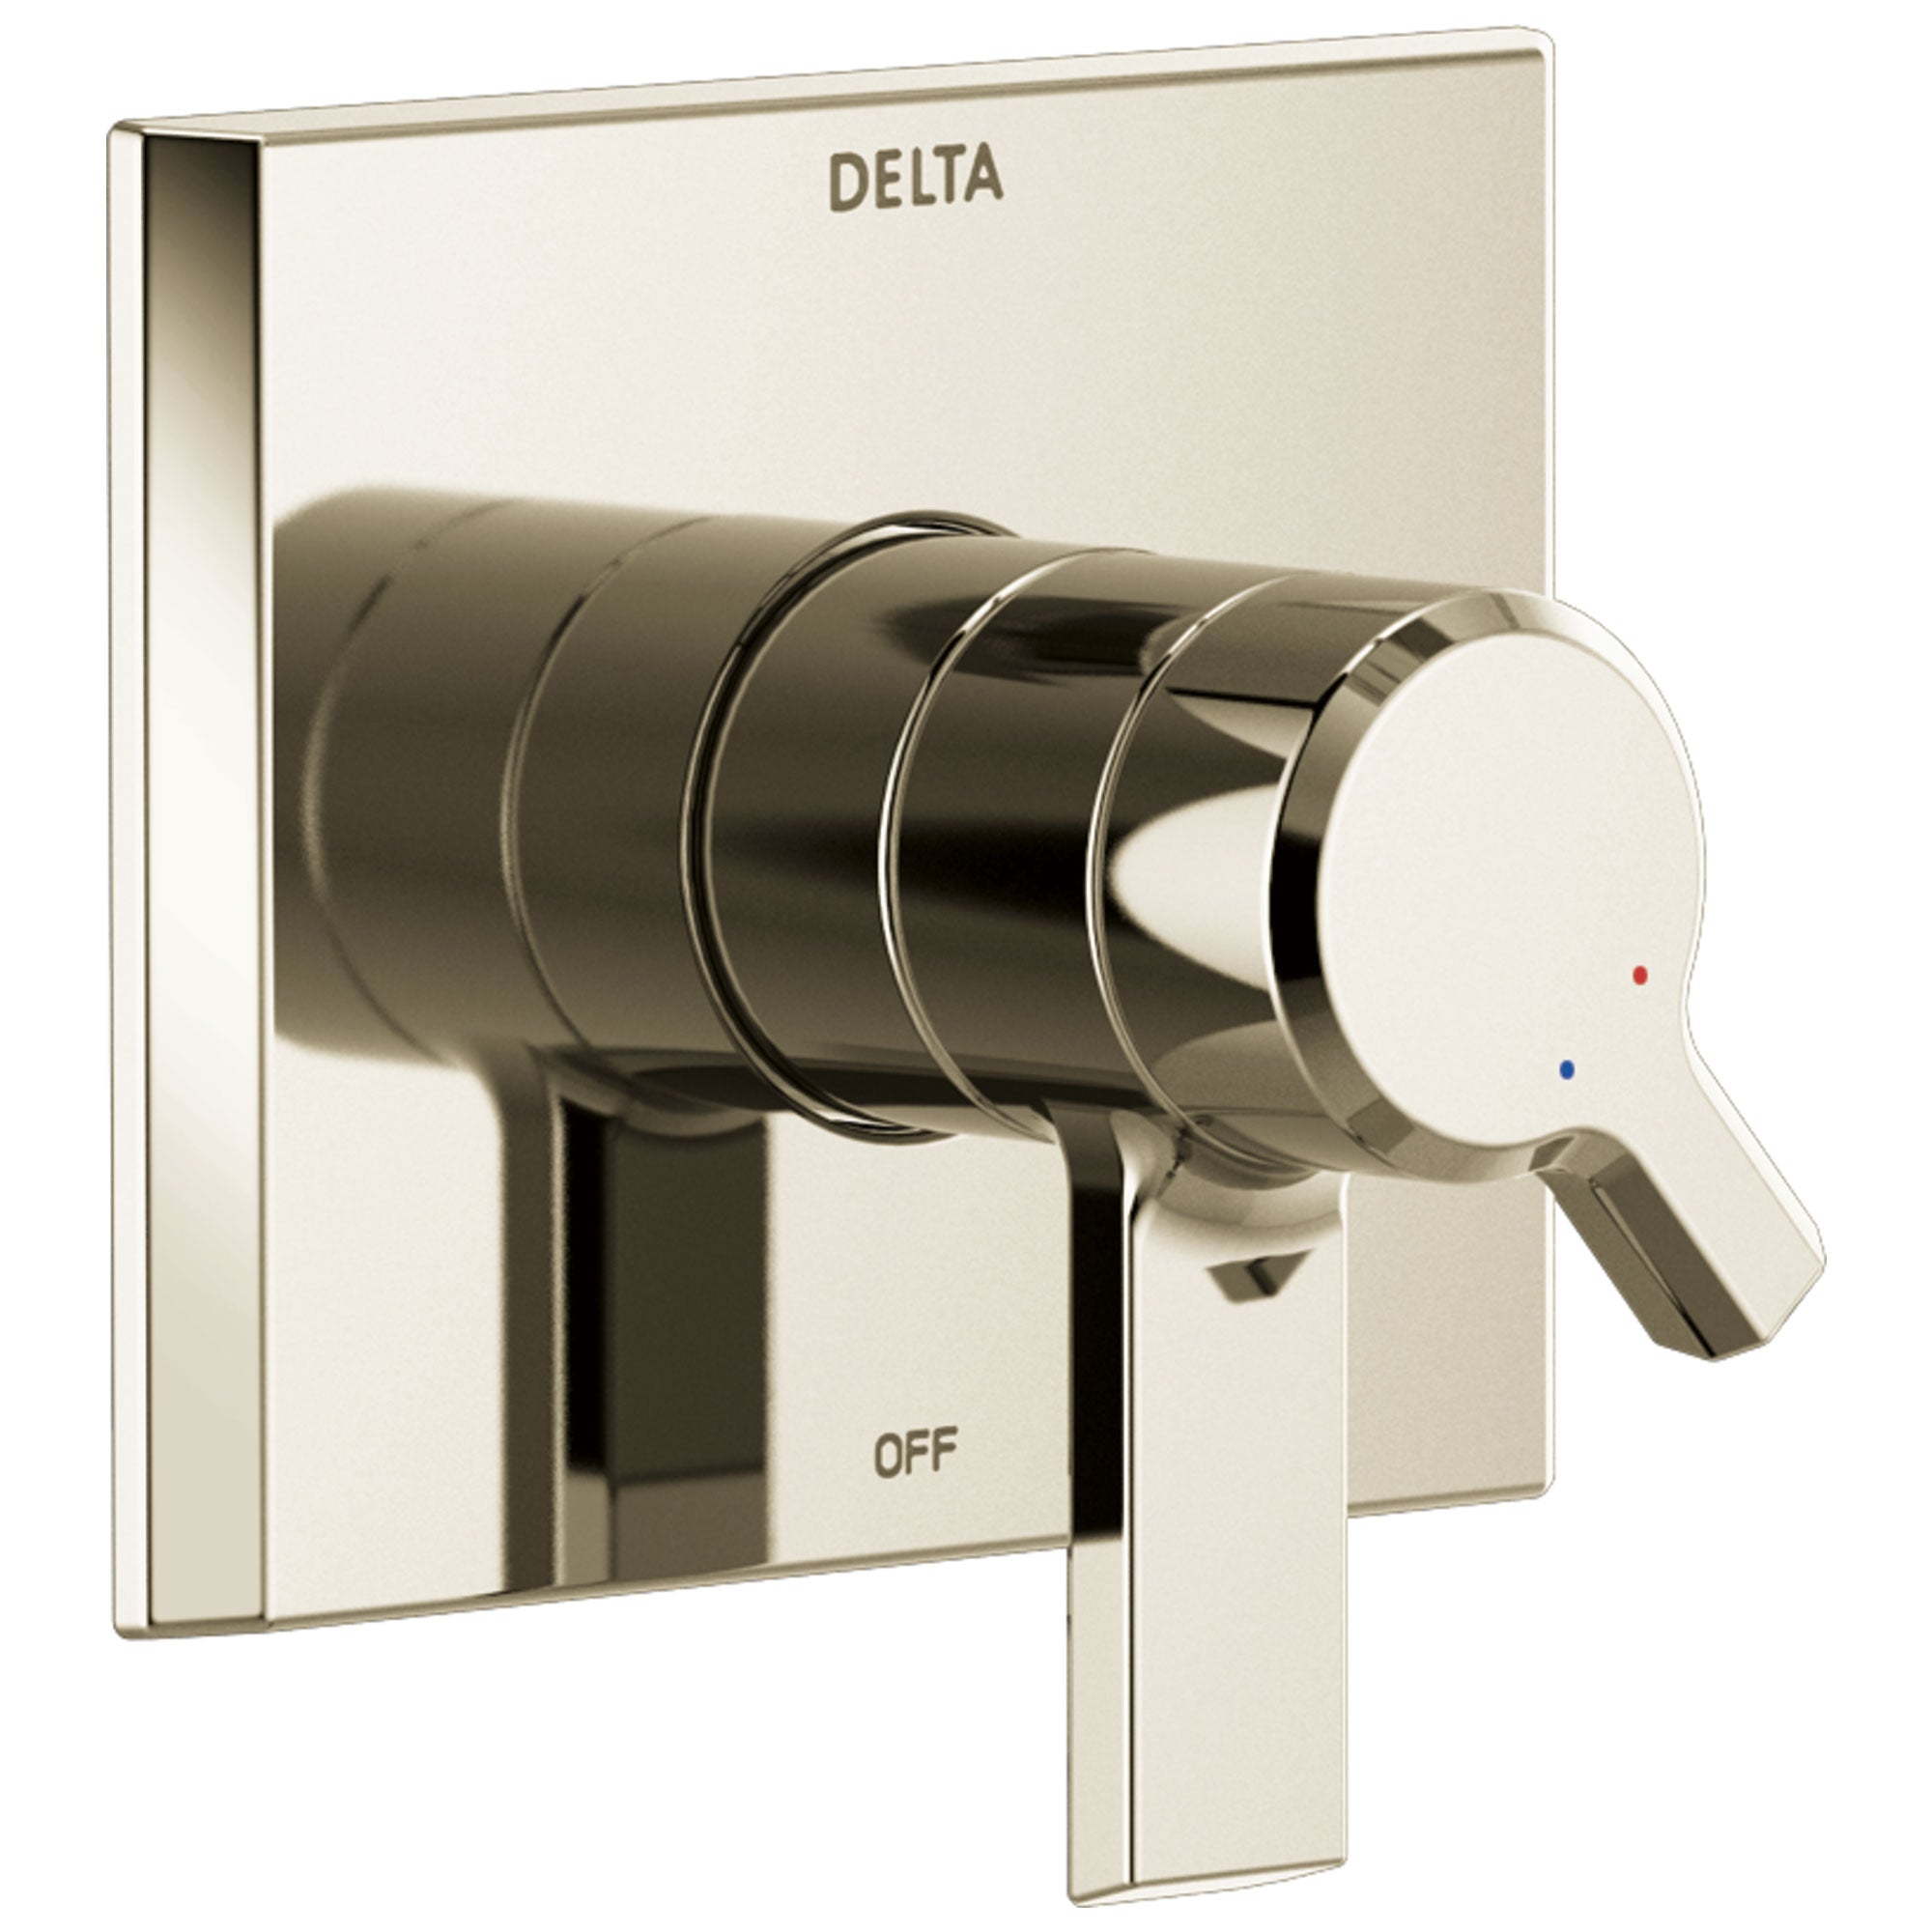 Delta Pivotal Modern Polished Nickel Finish Monitor 17 Series Shower Faucet Control Includes Handles, Cartridge, and Valve with Stops D3394V